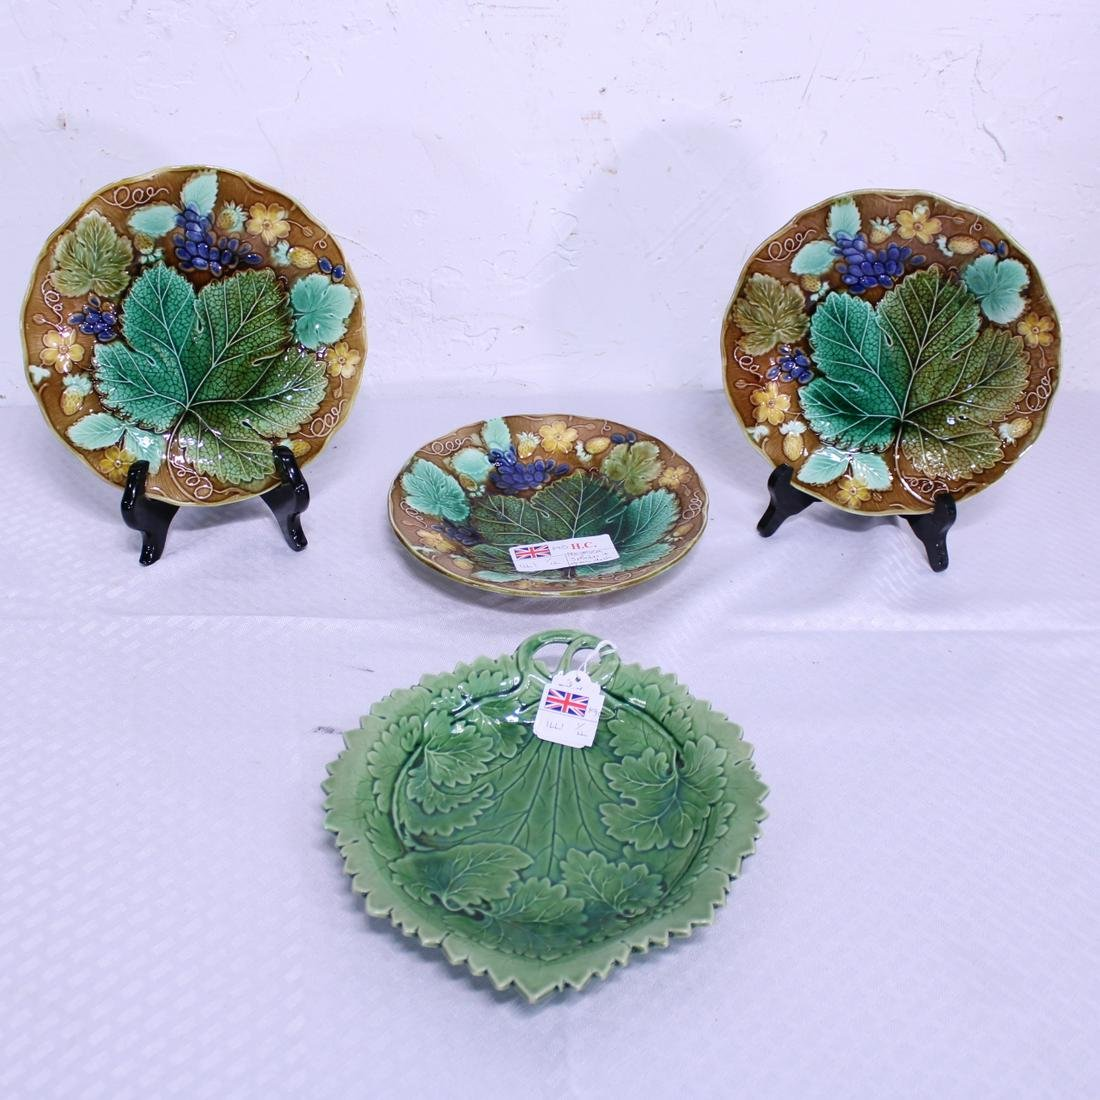 Collection of 4 pieces of Majolica